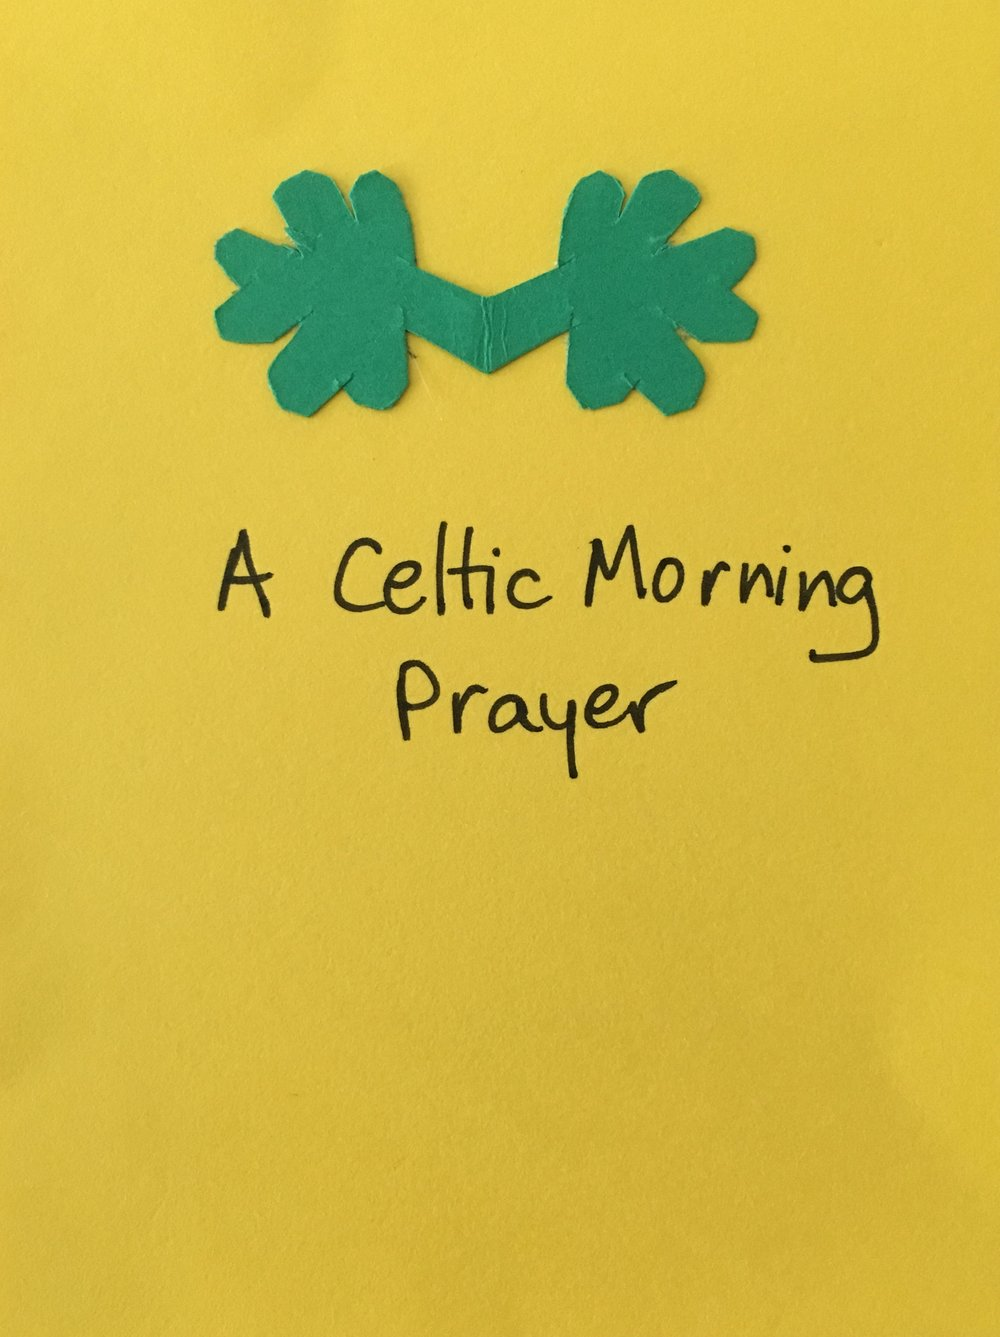 Paired shamrocks on a zine I designed using a tradition Celtic Prayer